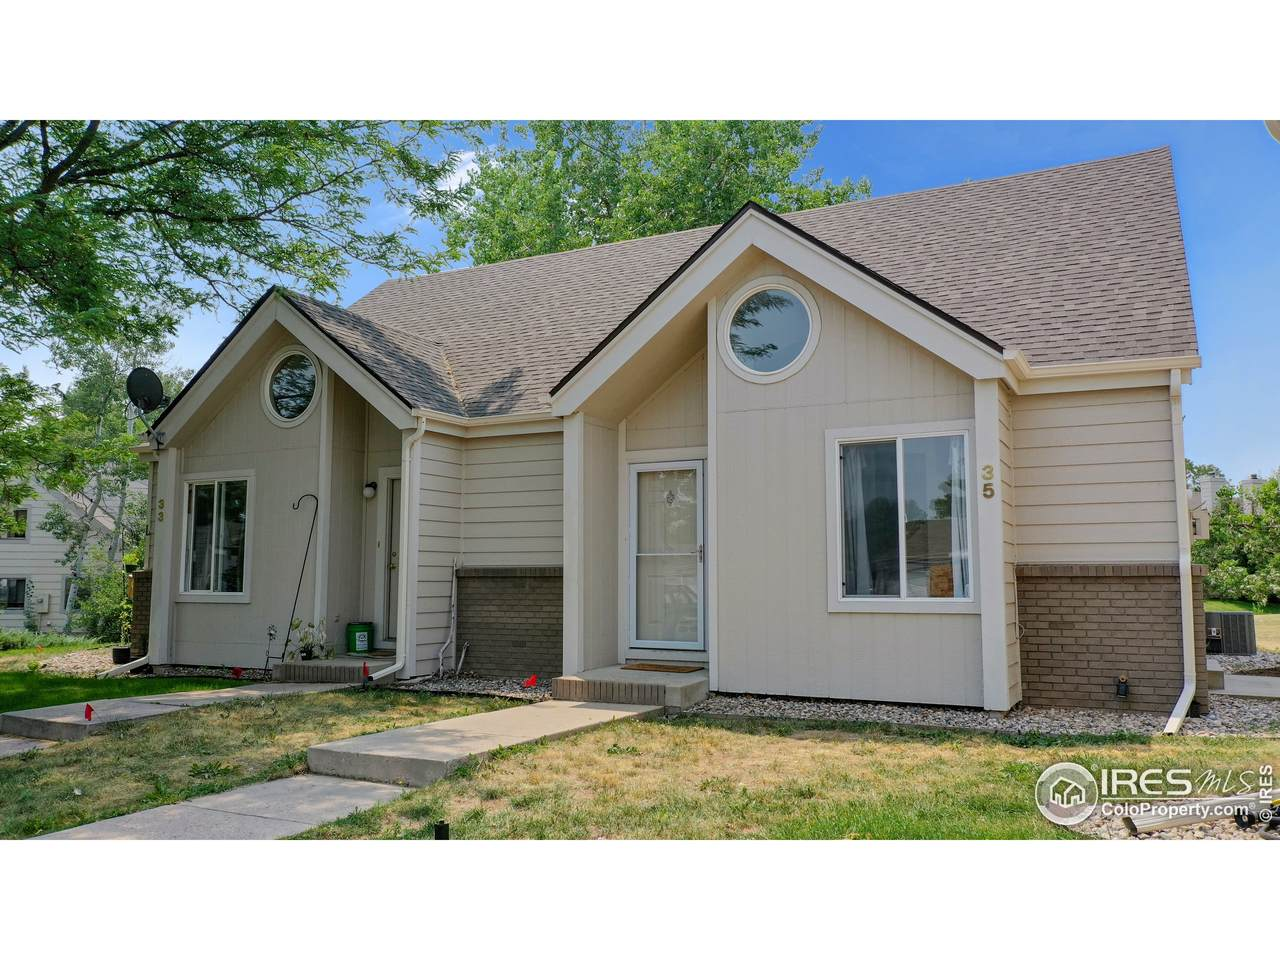 2900 Ross Dr - Photo 1